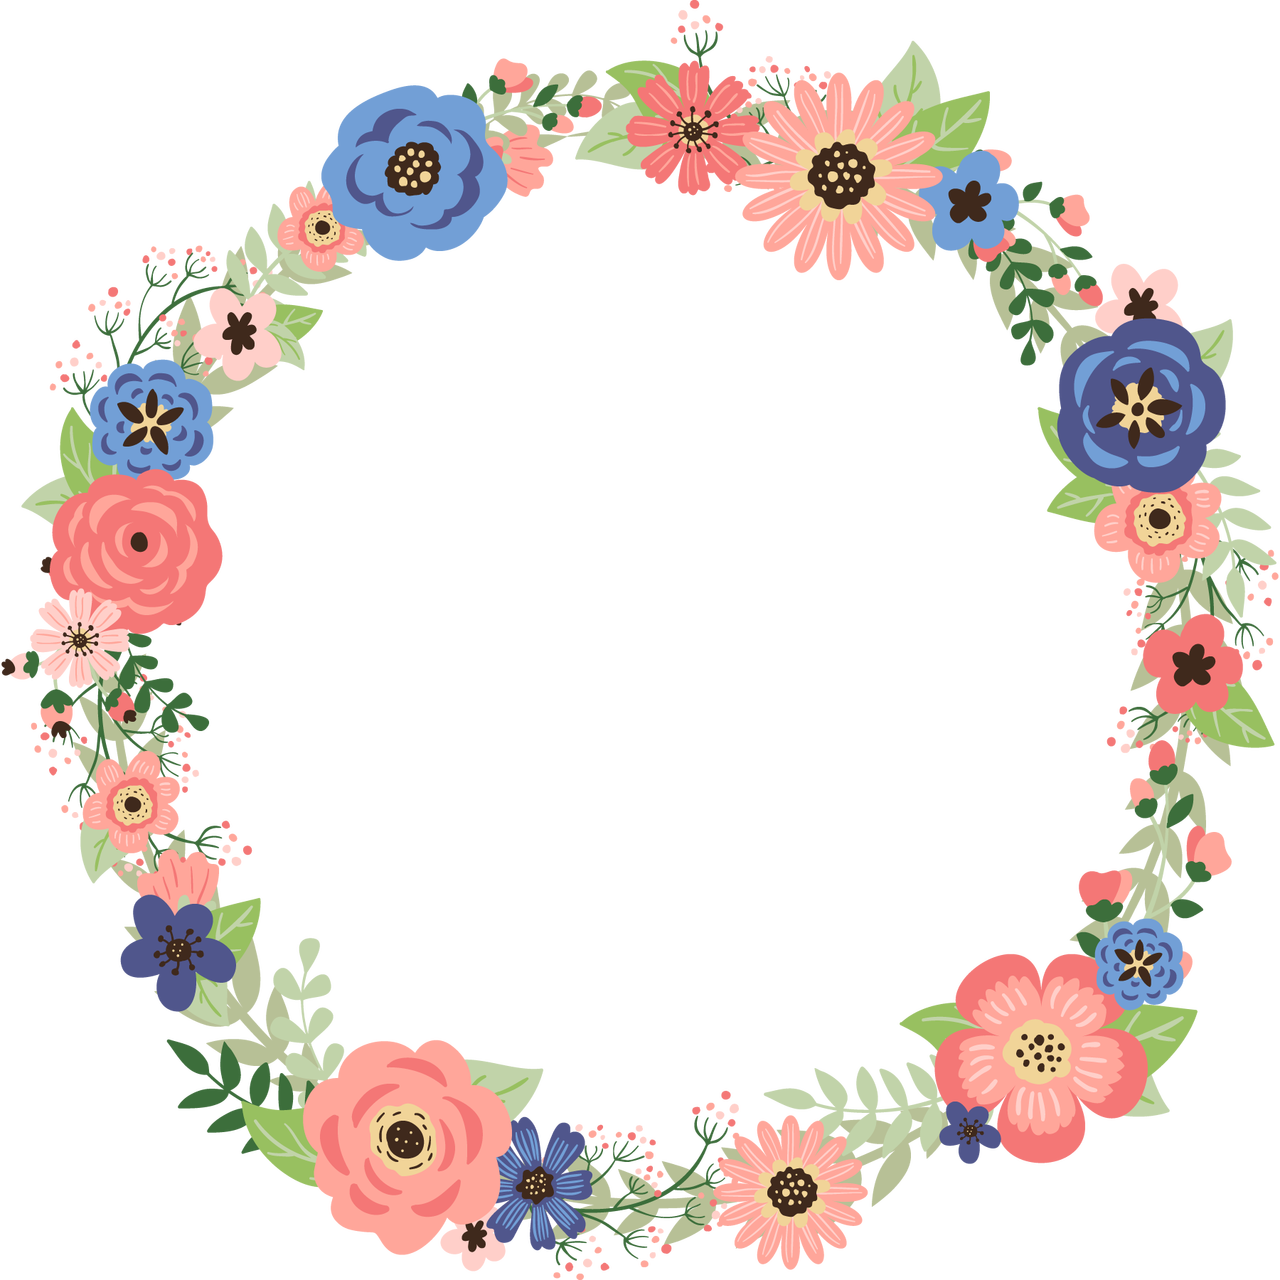 Floral wreath png. Coral and navy ready